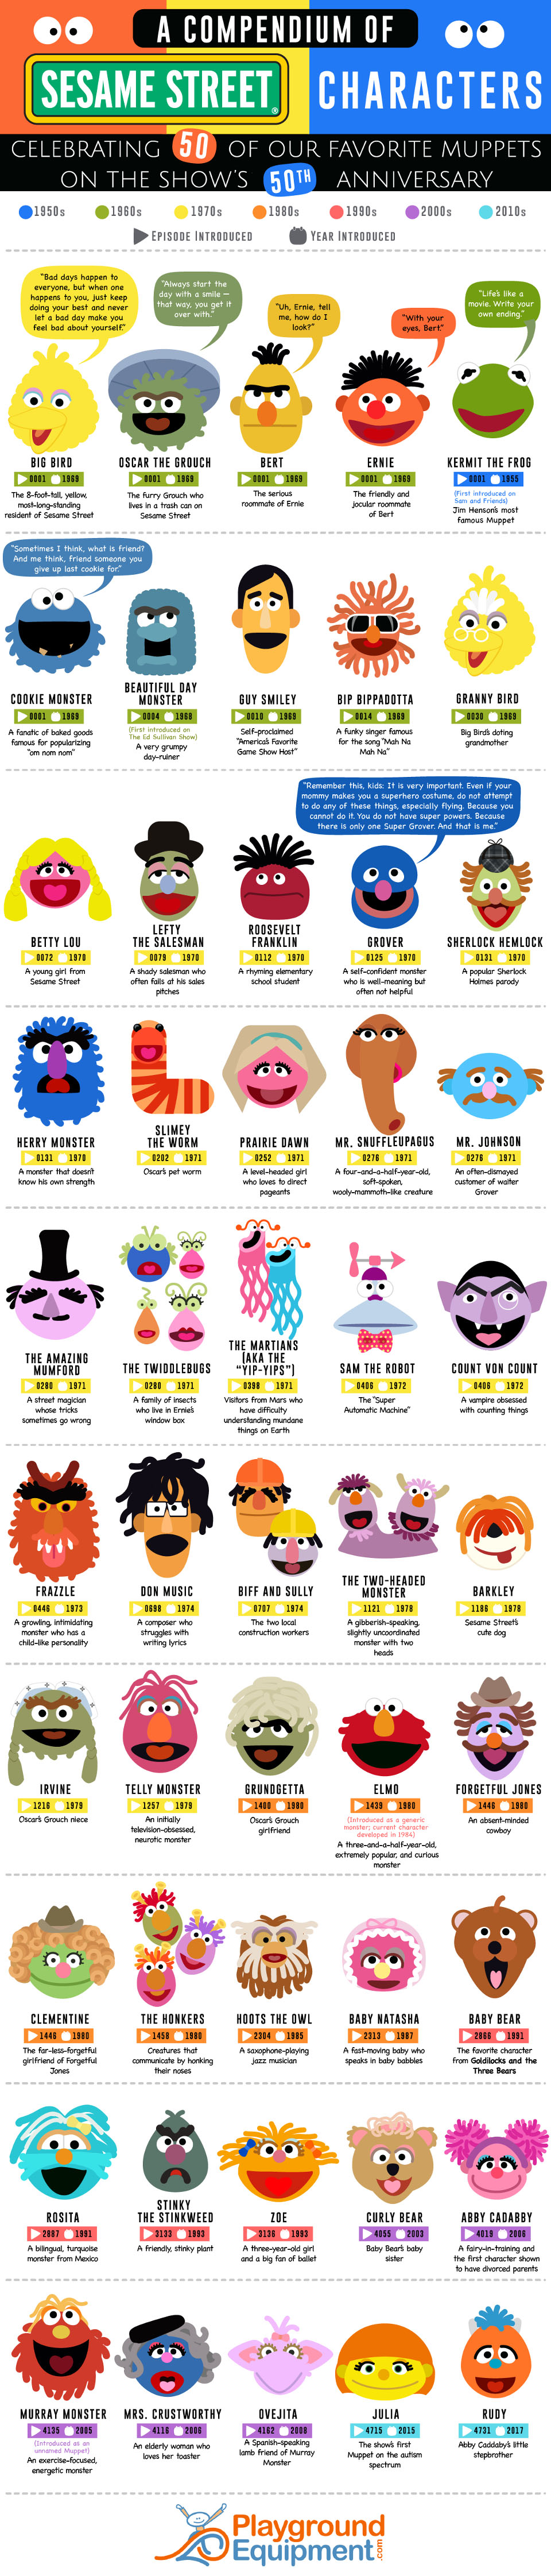 50 Years of Sesame Street Characters